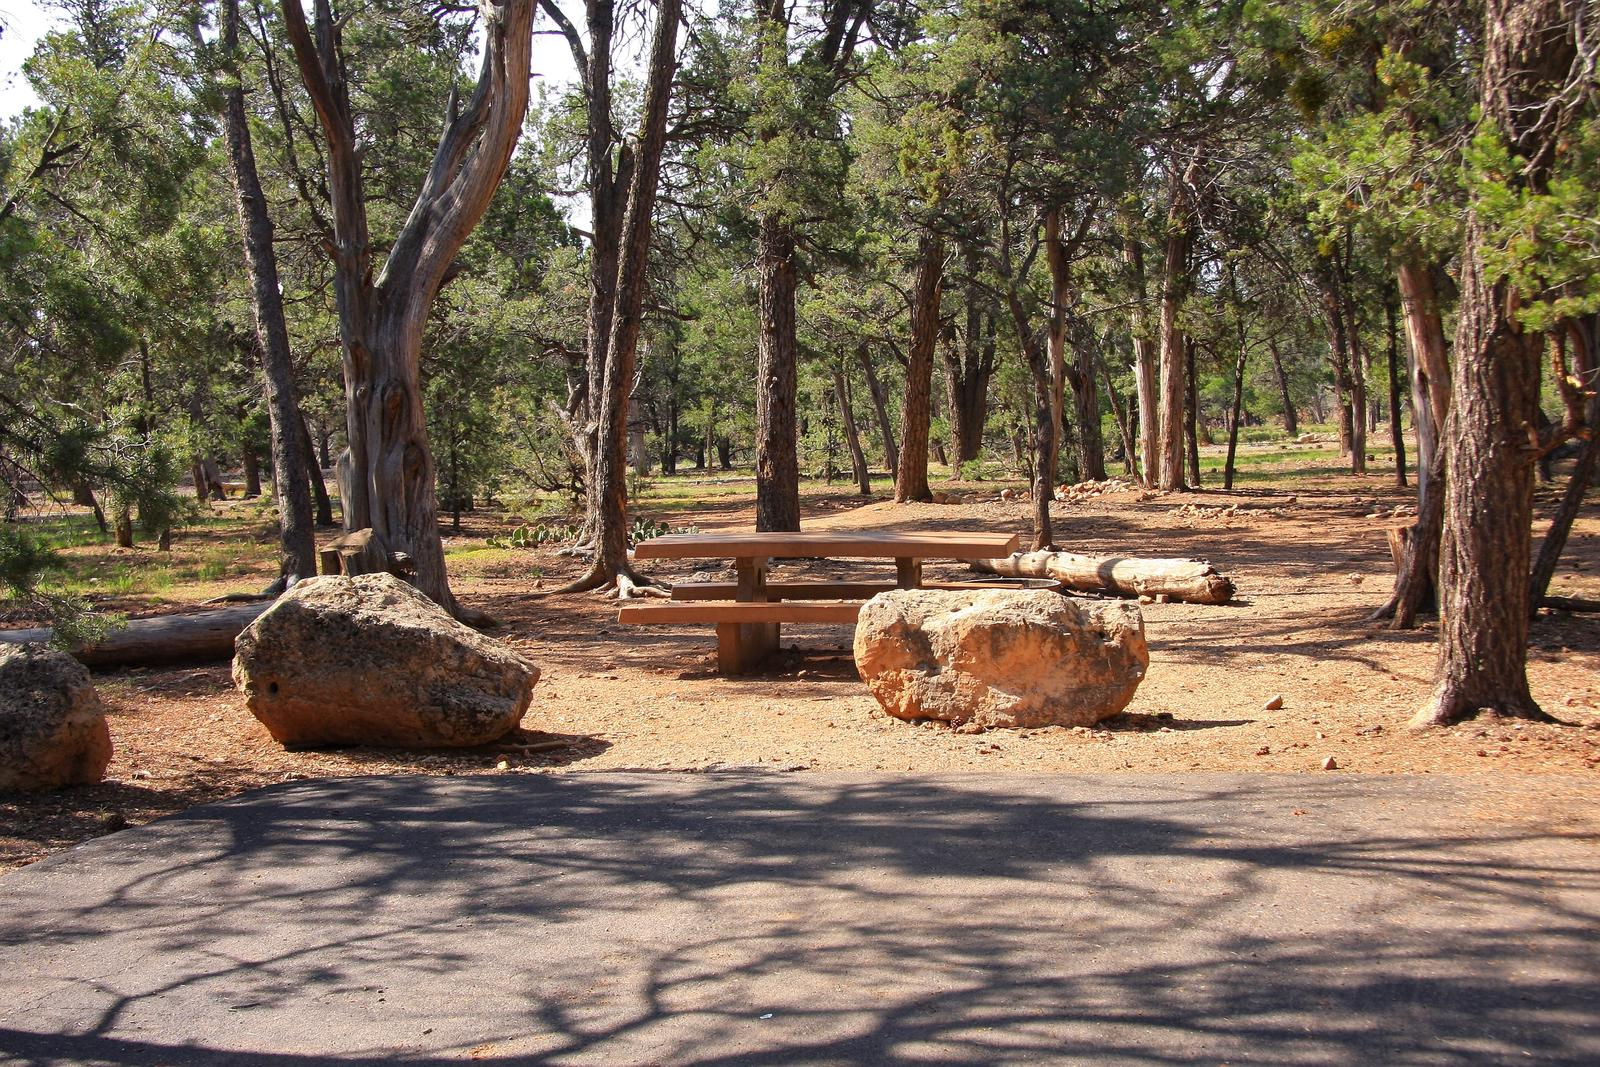 Picnic table, fire pit, and parking spot, Mather CampgroundPicnic table, fire pit, and parking spot for Juniper Loop 159, Mather Campground